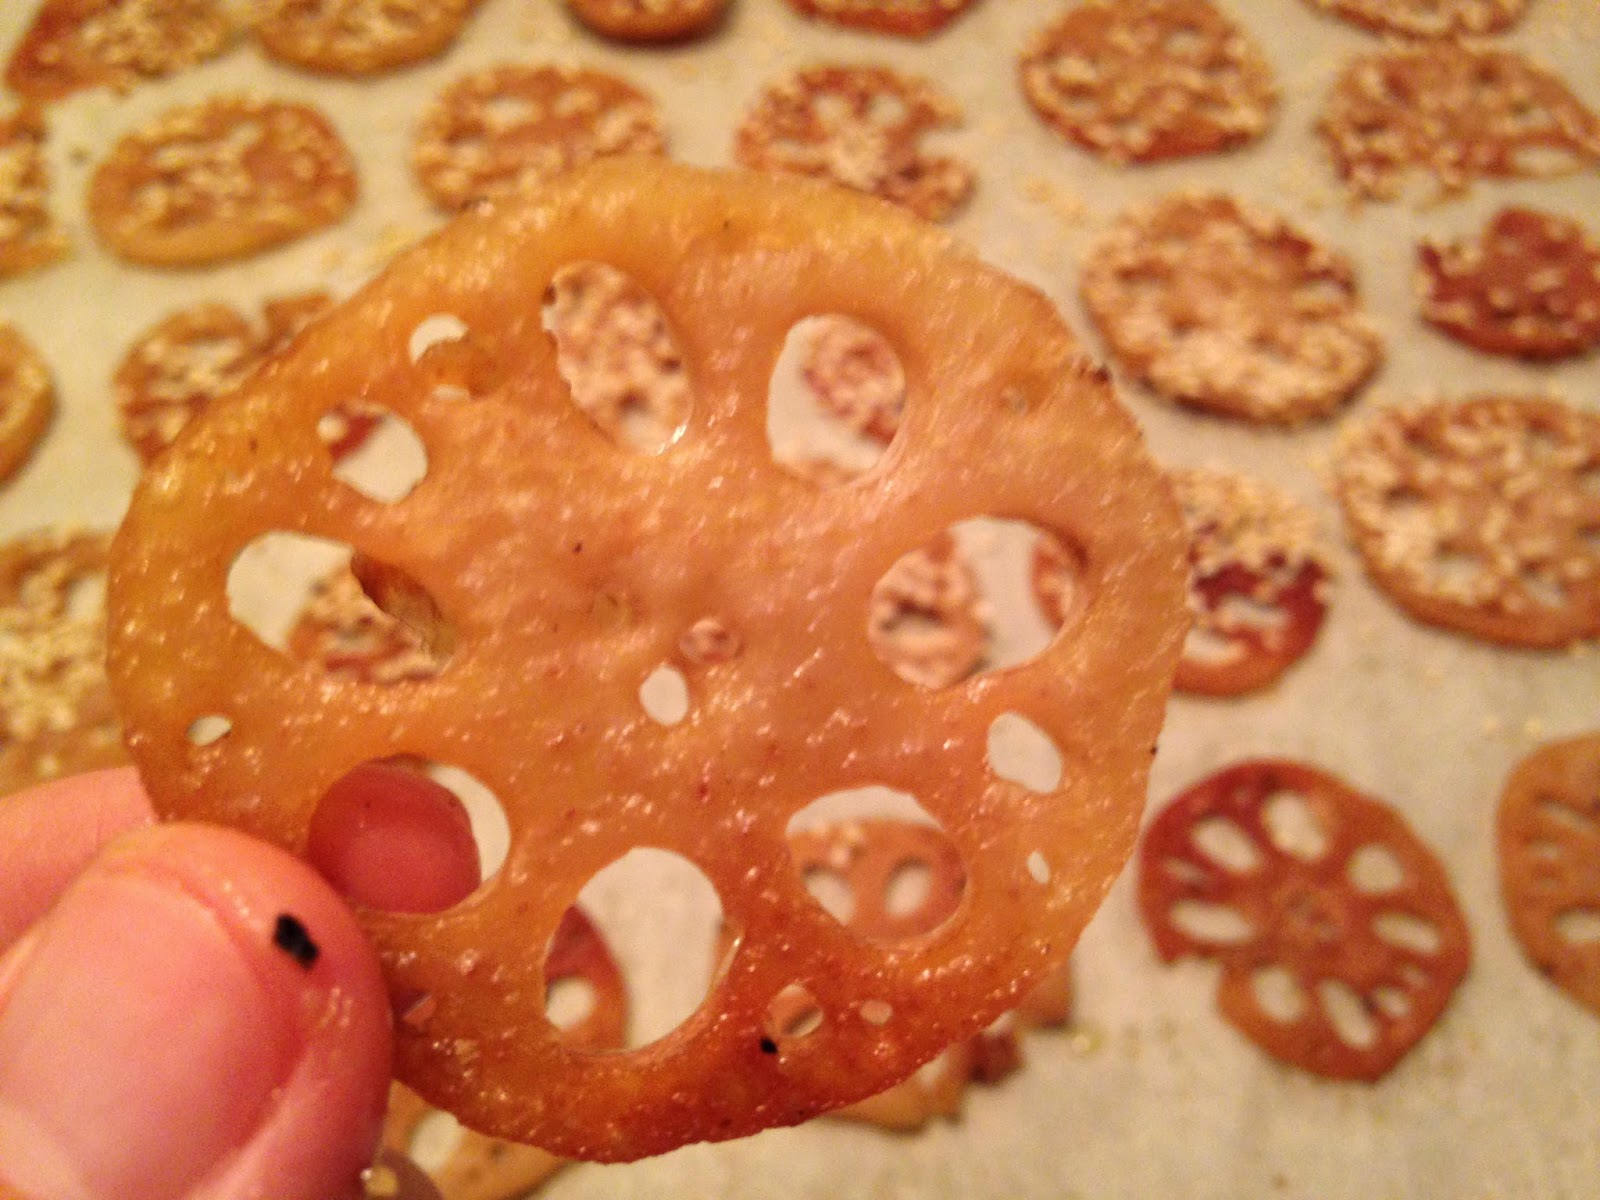 Frugal Allergy Mom Baked Lotus Root Chips Free Of Top Allergens